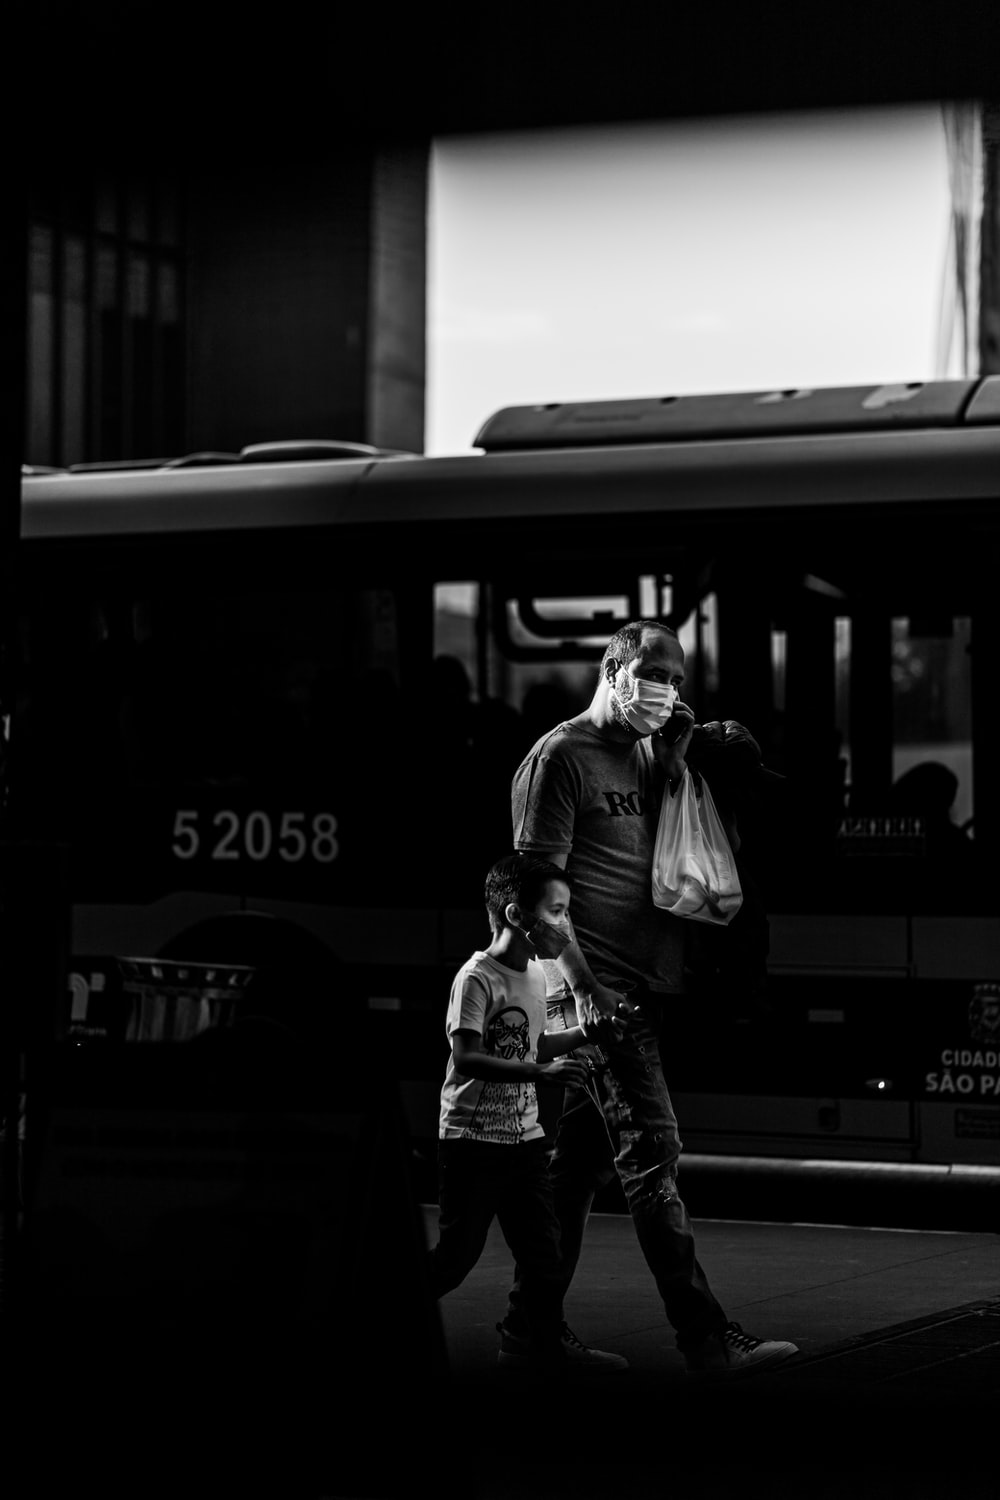 grayscale photo of woman in jacket and jeans standing beside train